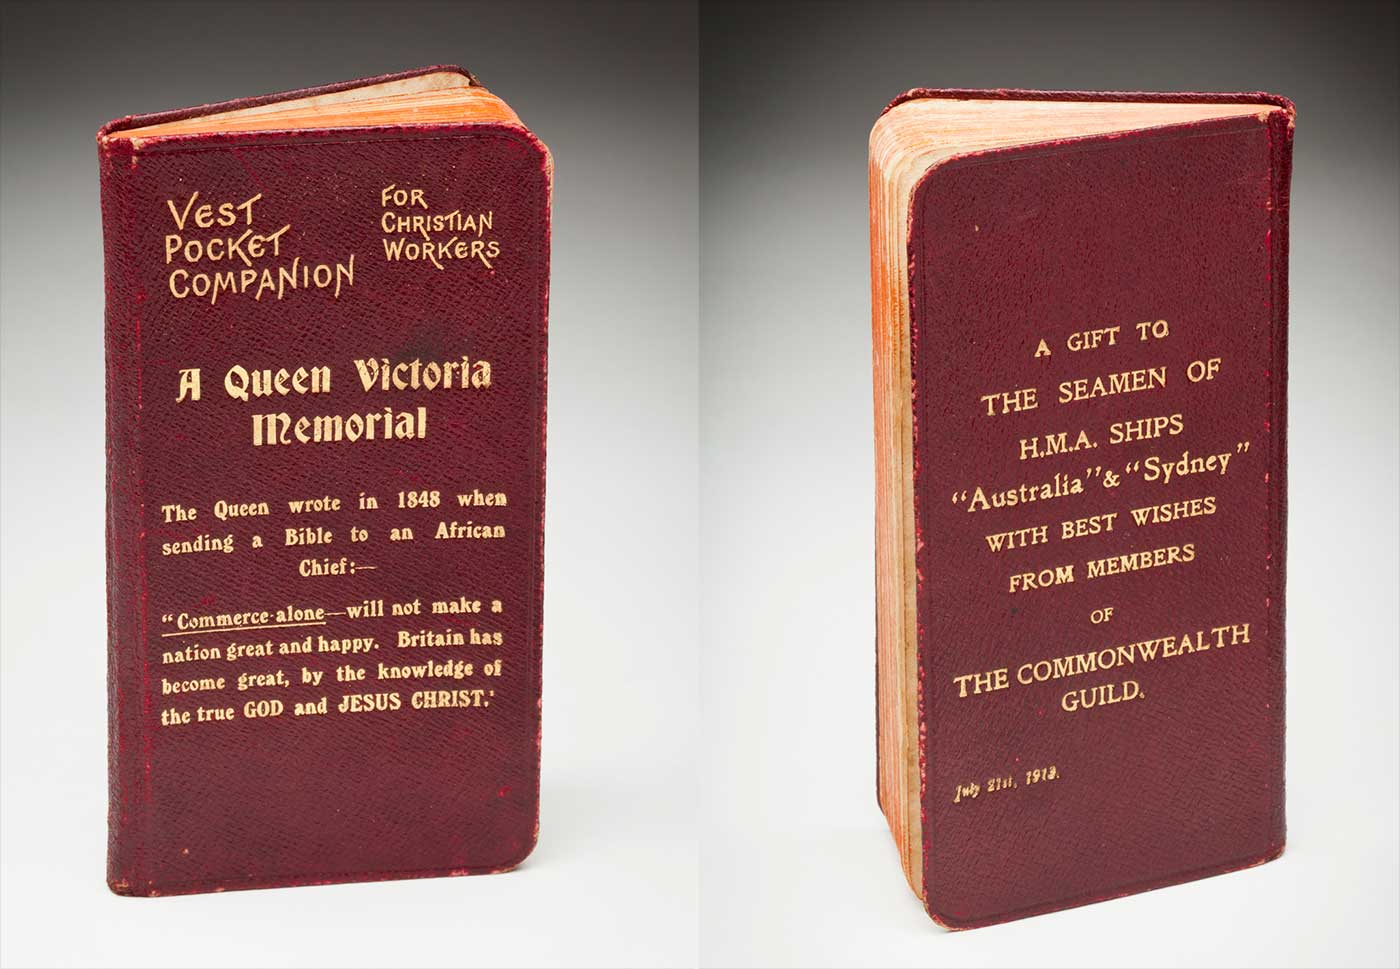 Front and back cover of a small 'VEST POCKET COMPANION FOR CHRISTIAN WORKERS' book, with a red cover, and gold writing. - click to view larger image